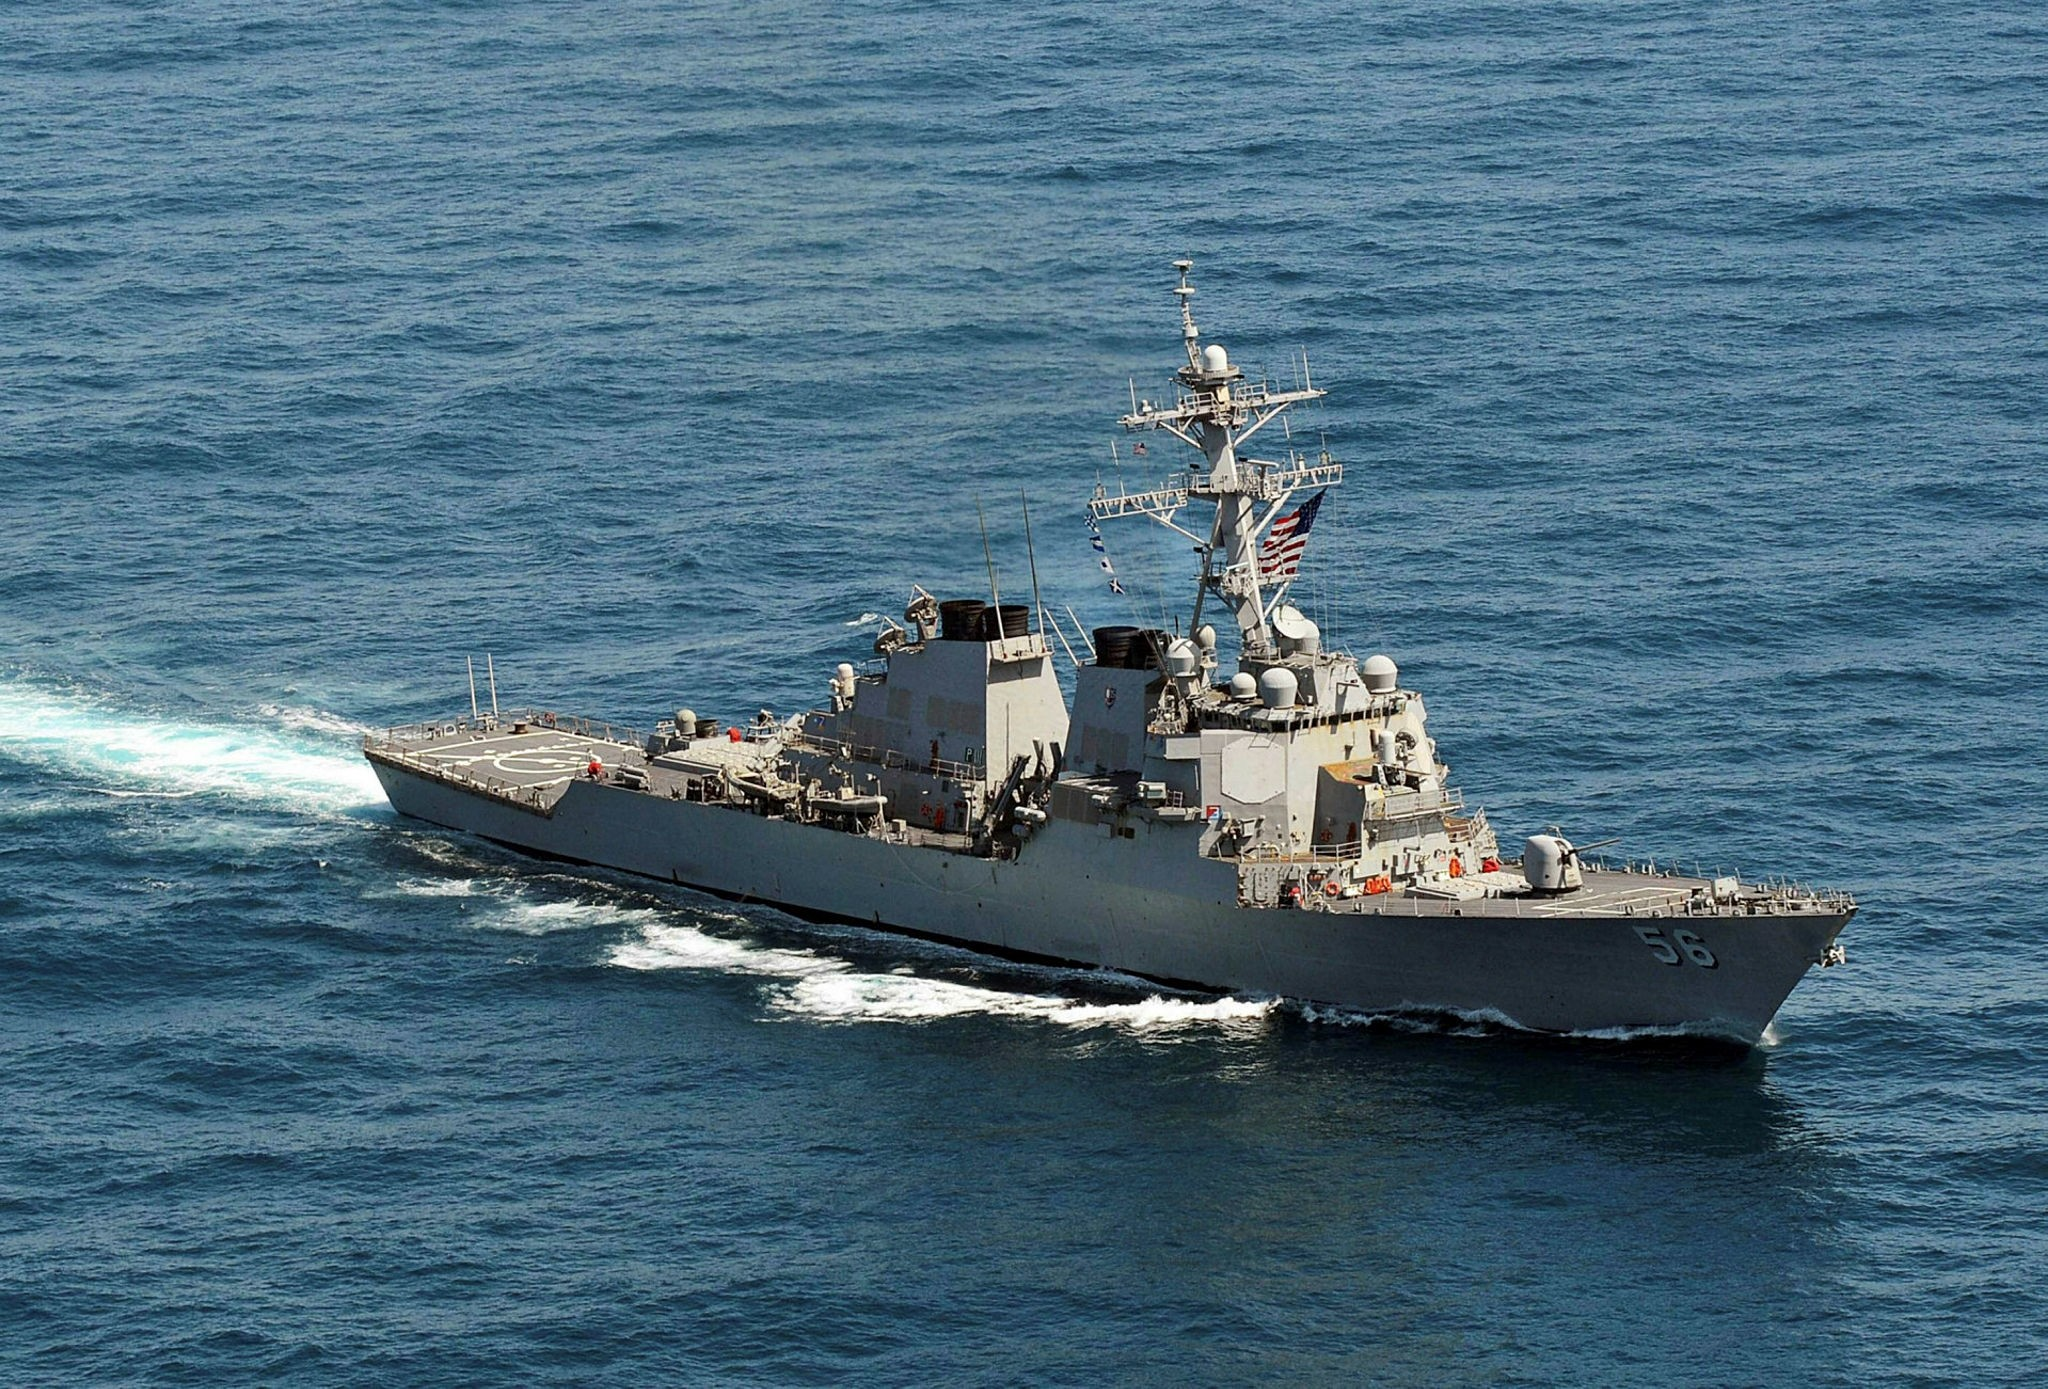 This US Navy file photo taken on March 21, 2013 shows the Arleigh Burke-class guided-missile destroyer USS John S. McCain (DDG 56) sailing in the waters off the Korean Peninsula. (AFP file photo)